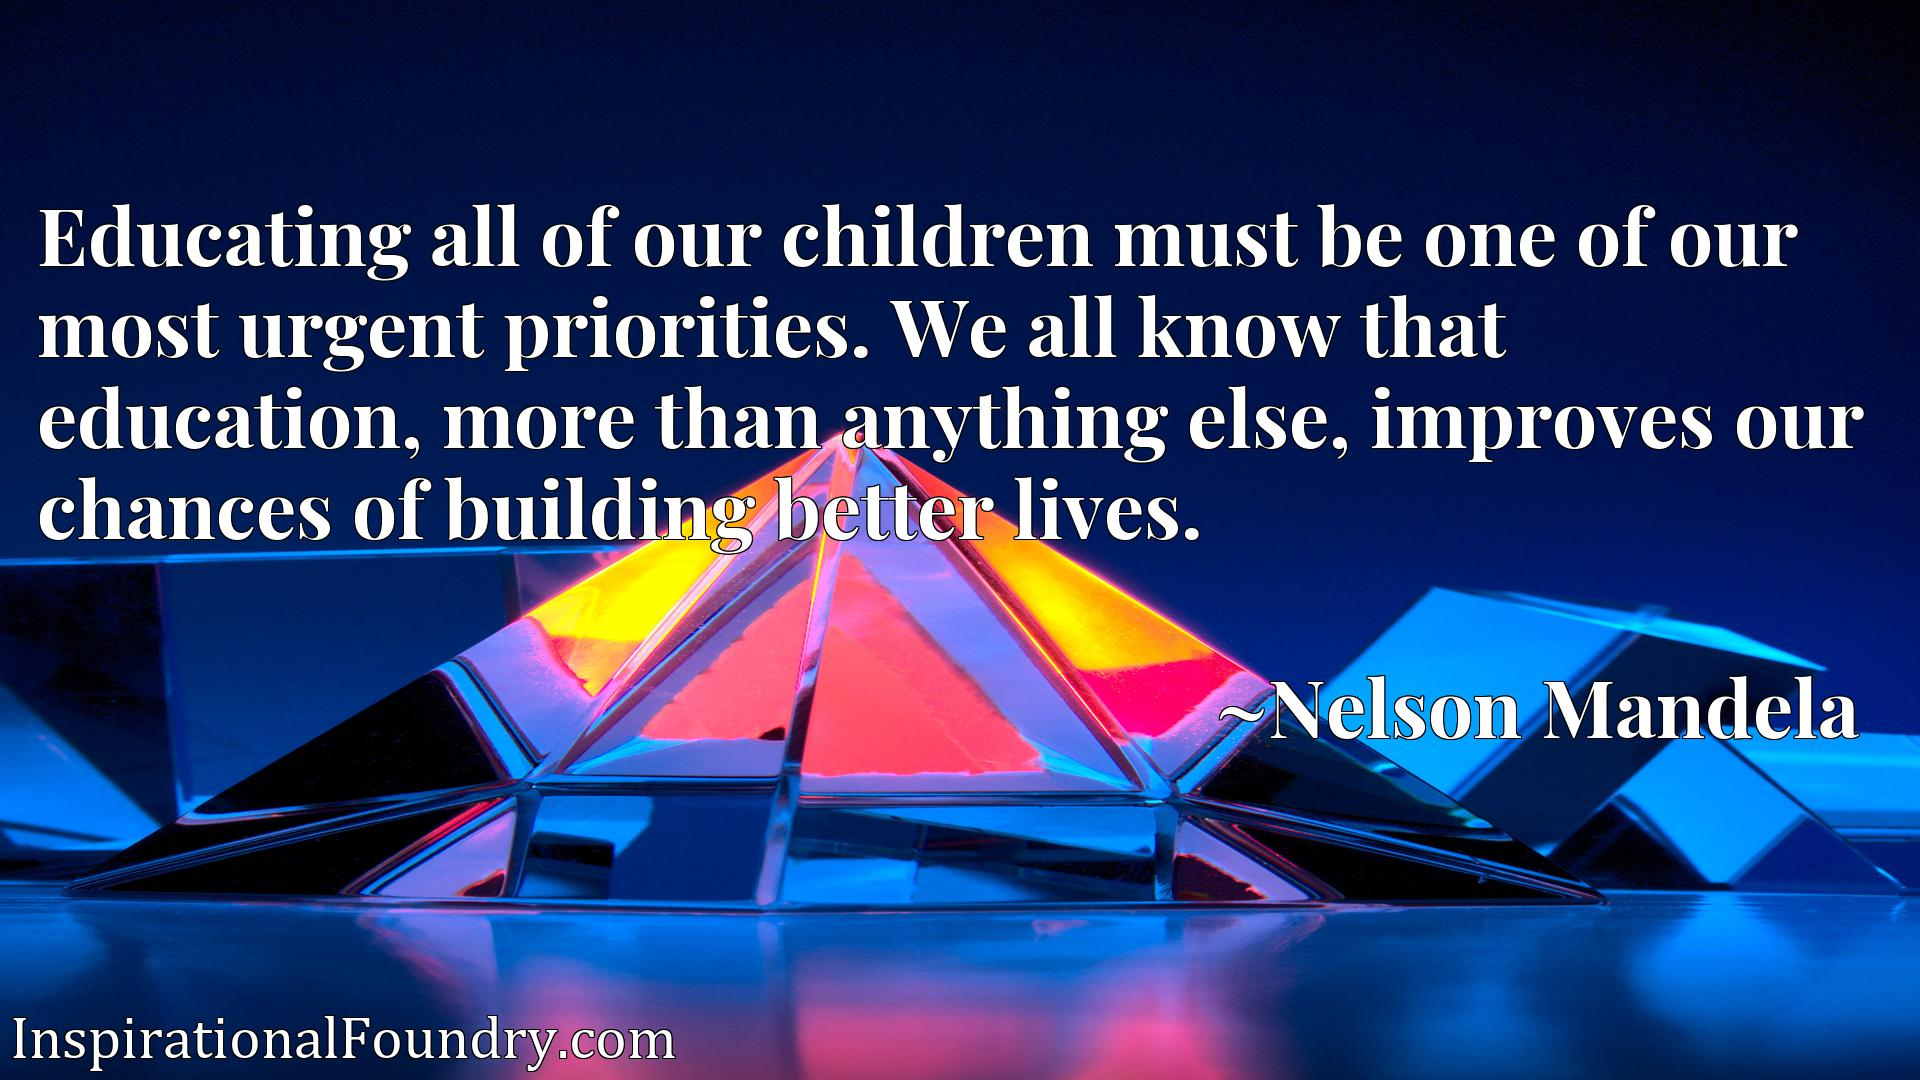 Quote Picture :Educating all of our children must be one of our most urgent priorities. We all know that education, more than anything else, improves our chances of building better lives.